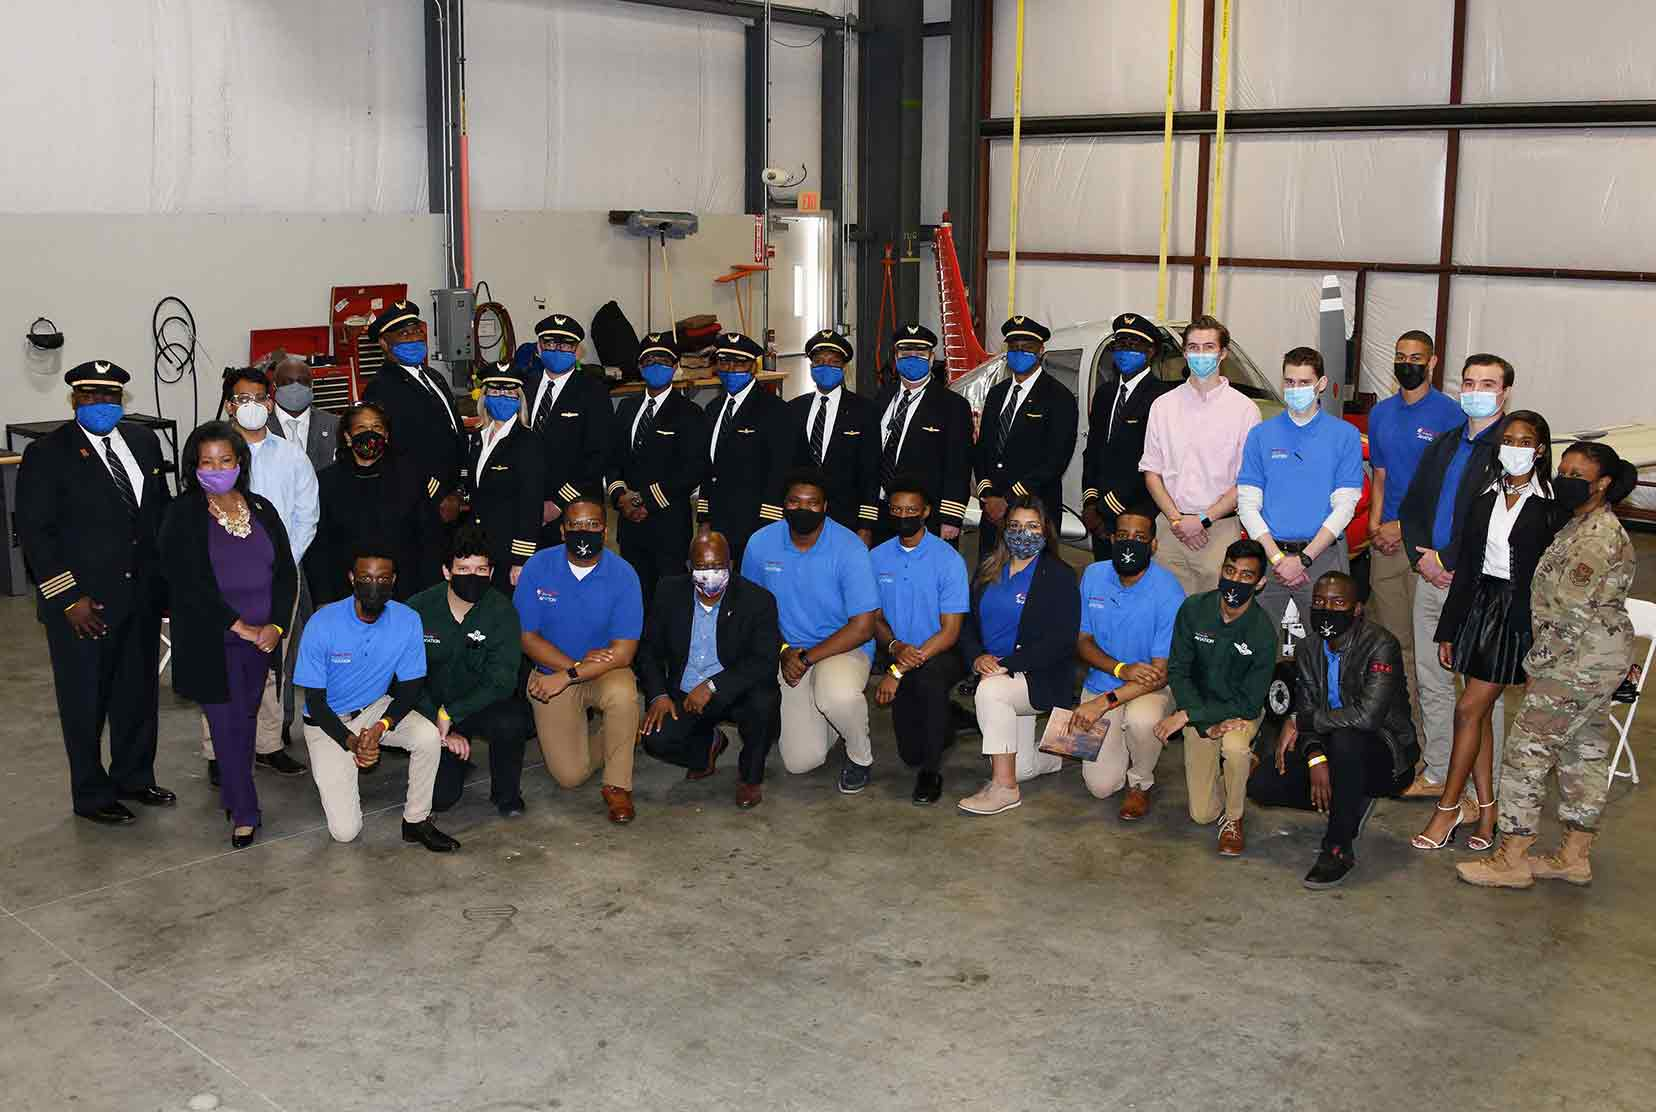 A group of Del State Aviation alumni (all United Airlines pilots), current Aviation students, and University officials come together for a group photo at the end of the April 15 celebration of Delaware State University partnership with United's Aviate Program.